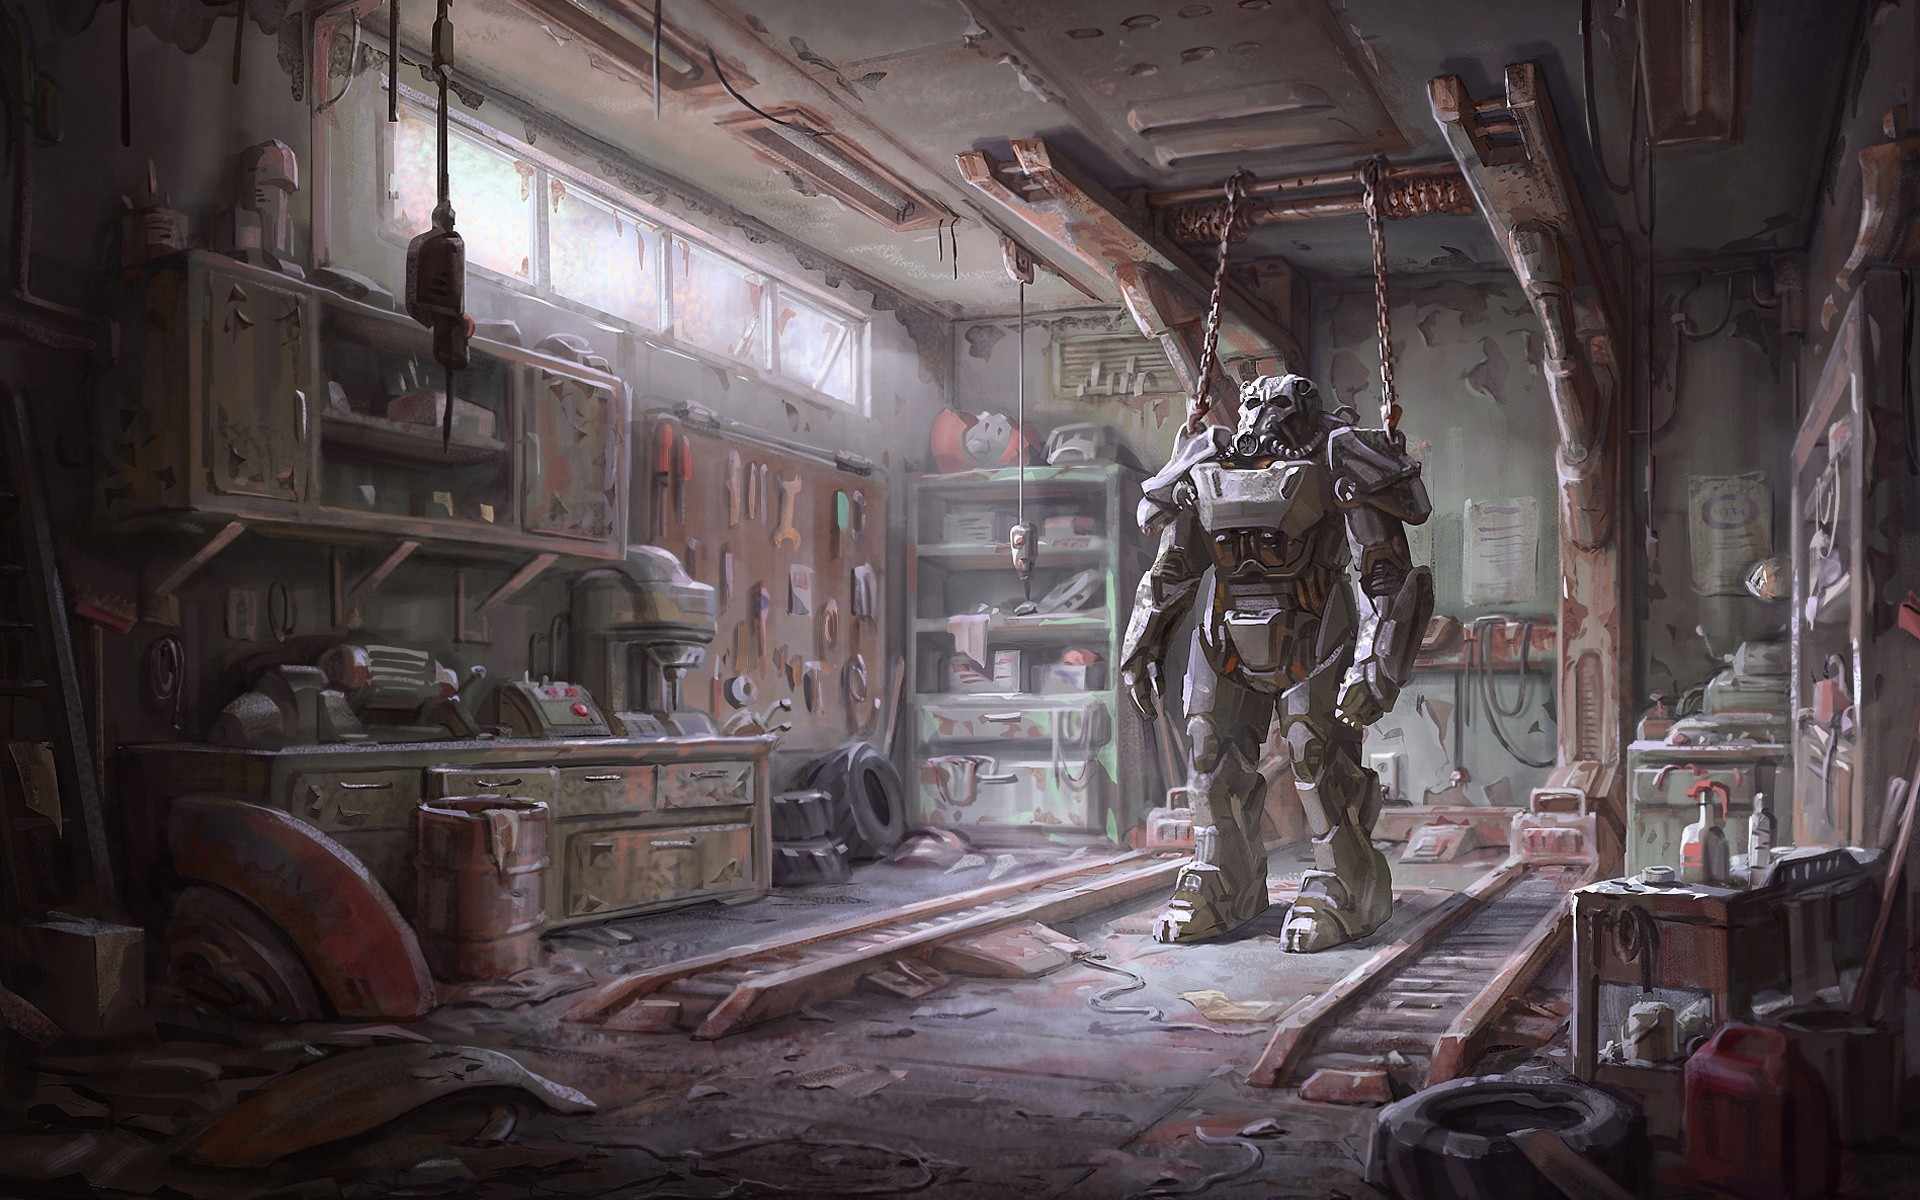 Fallout 4 Concept Art Armor Video Games Brotherhood Of